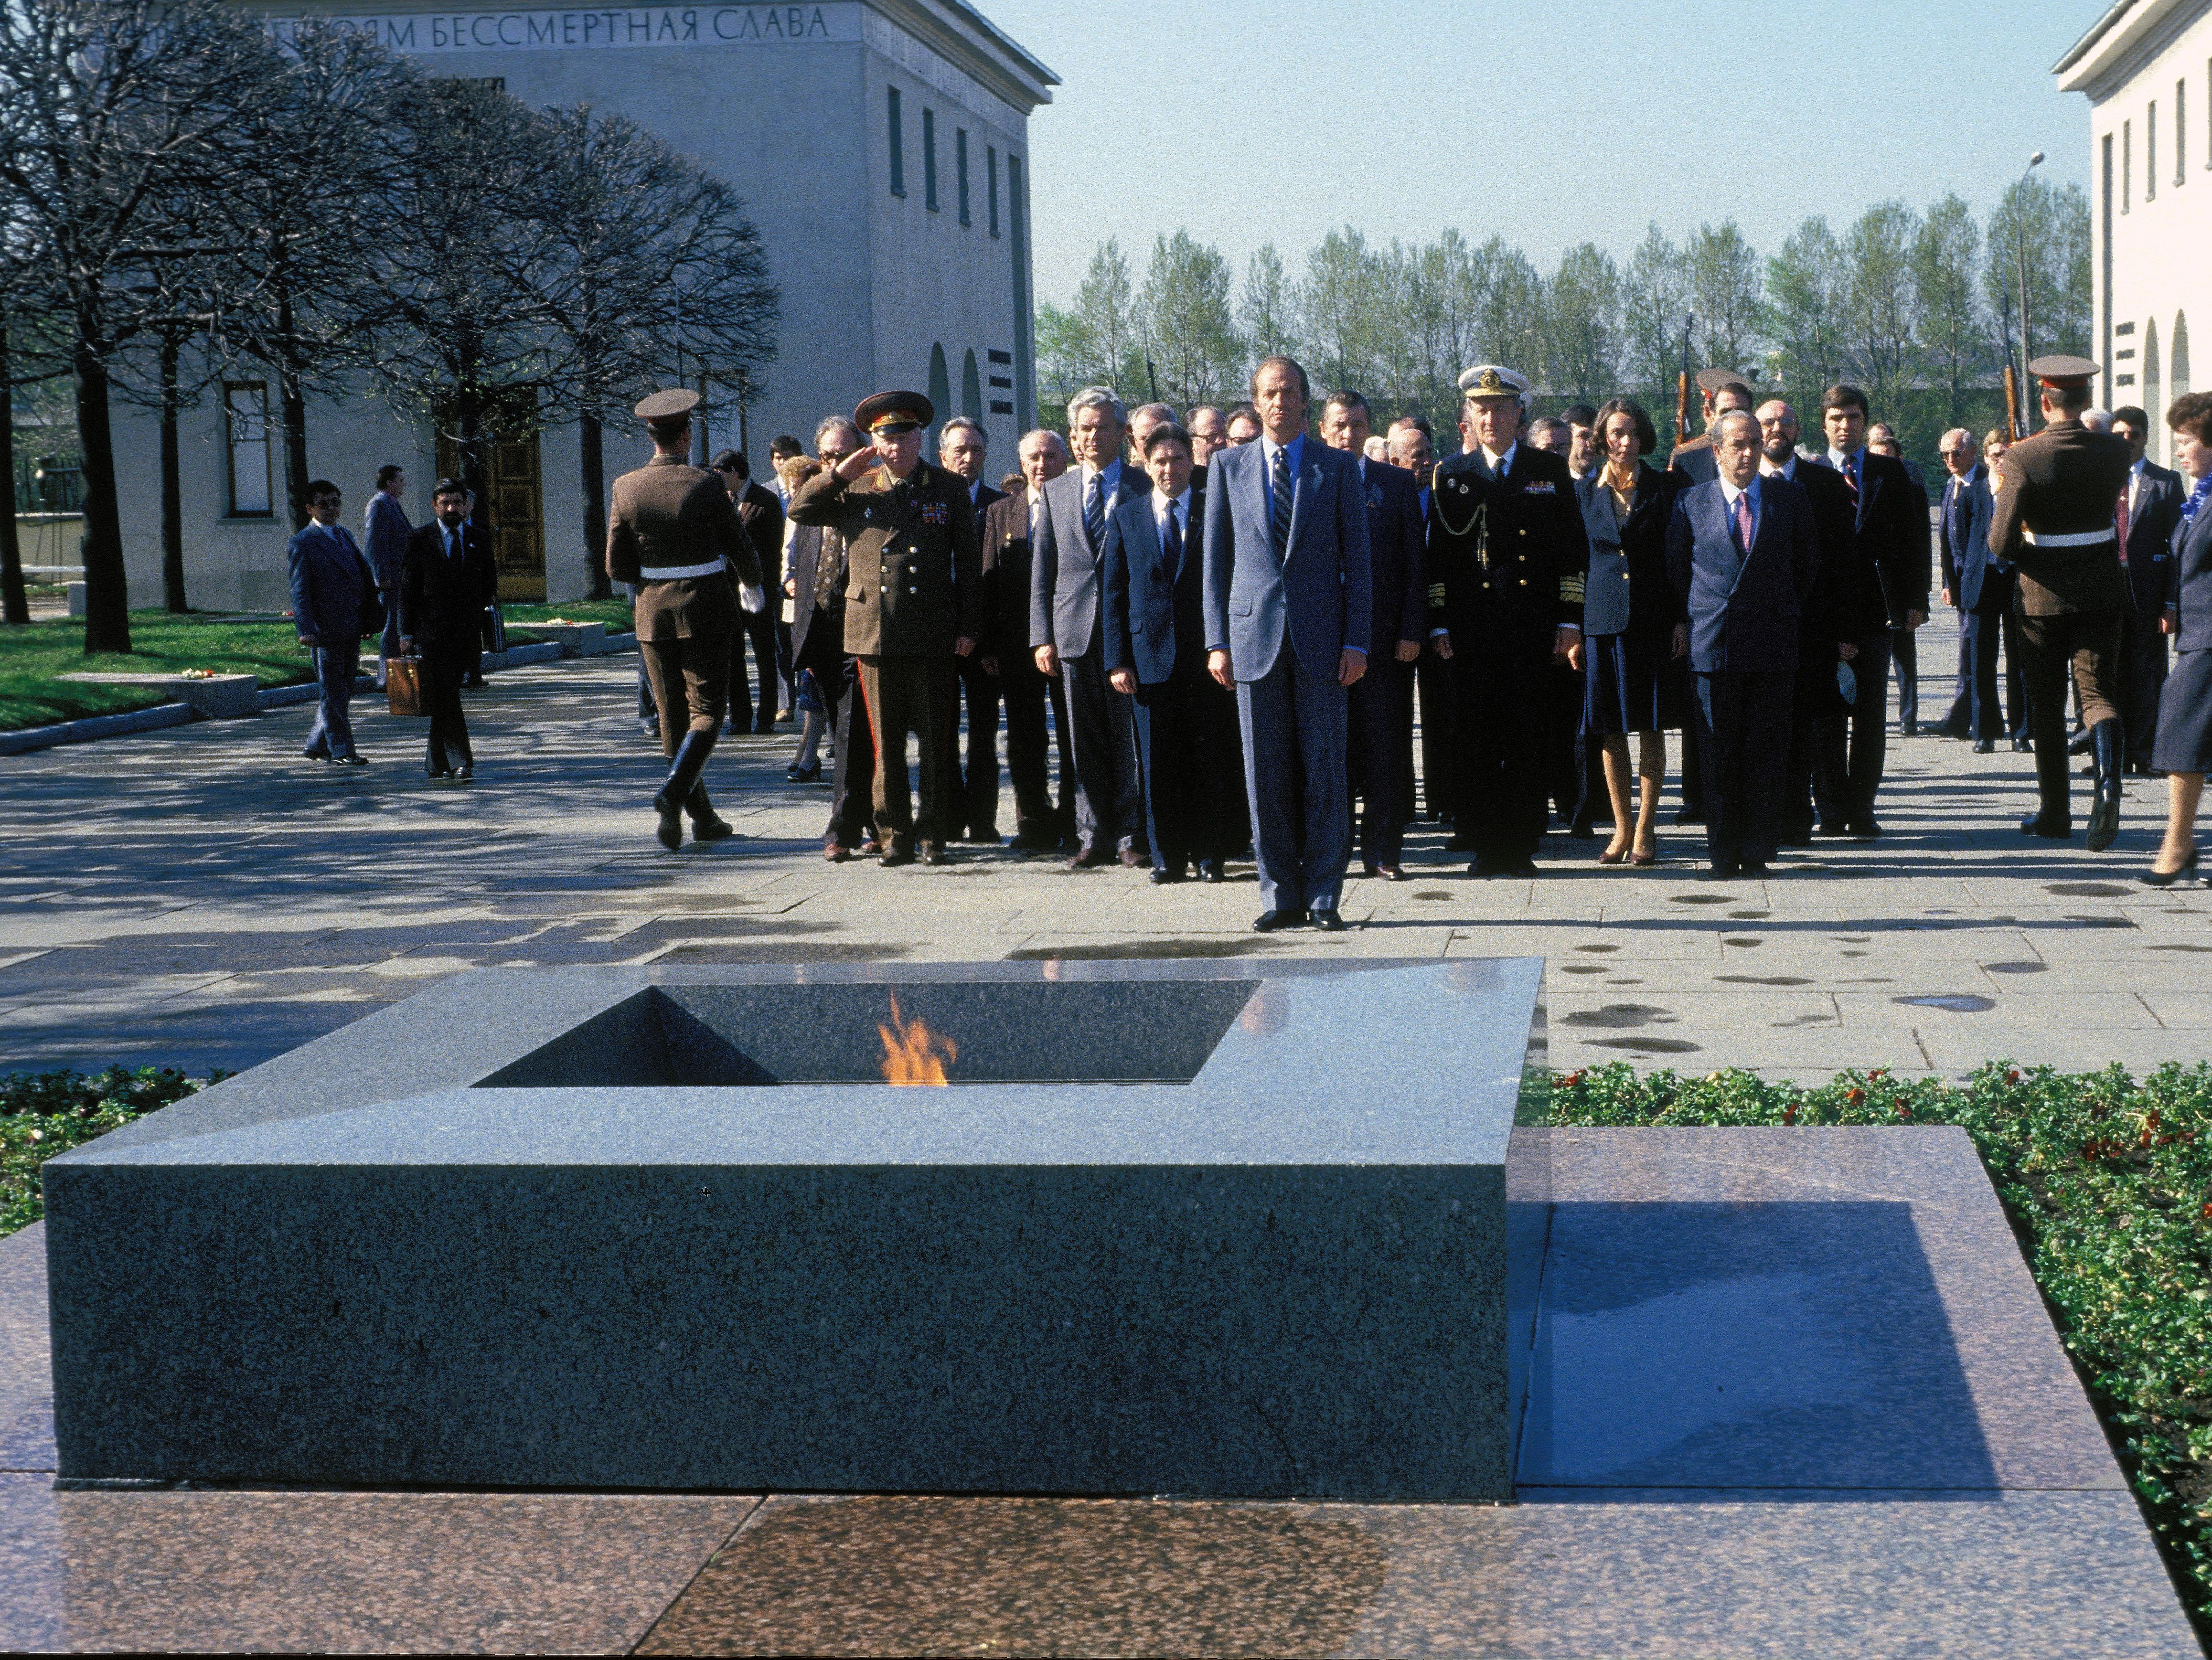 May, 1984. Leningrad, USSR. Official visit of the Kings of Spain Juan Carlos and Sofia to the Soviet Union. King Juan Carlos during a floral offering at the cemetery Piskariovskoye at Leningrad.